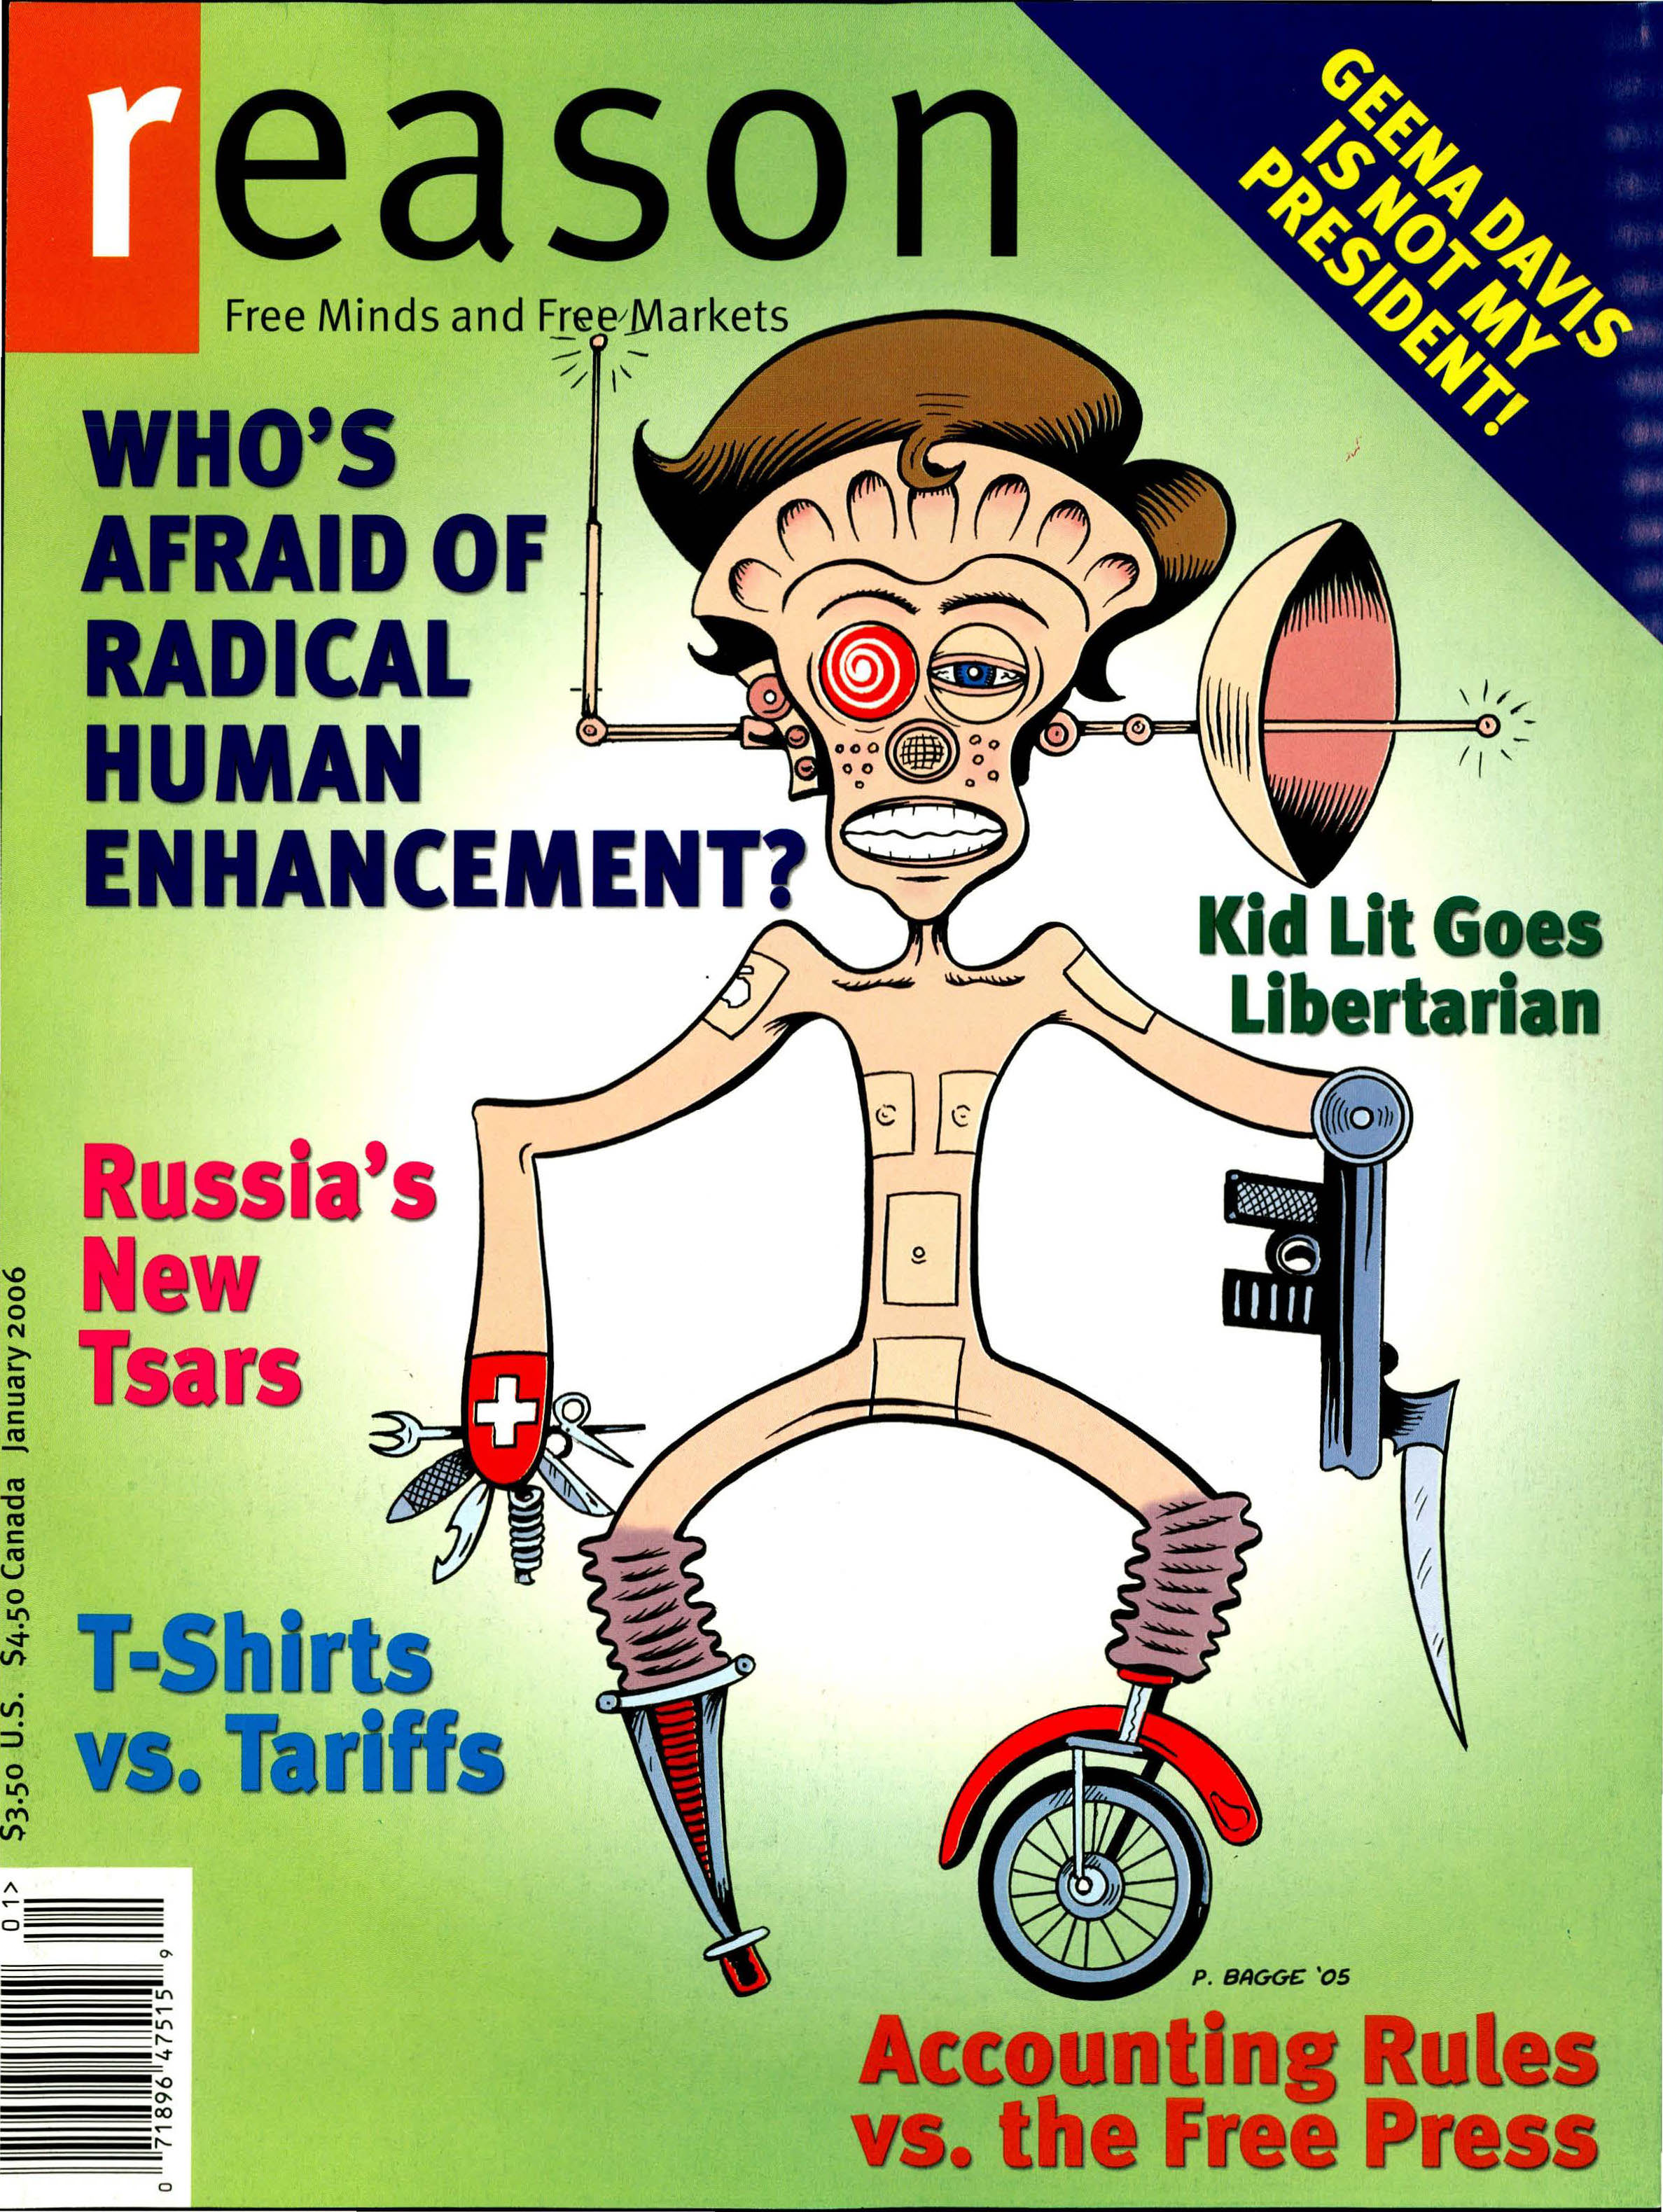 Reason Magazine, January 2006 cover image